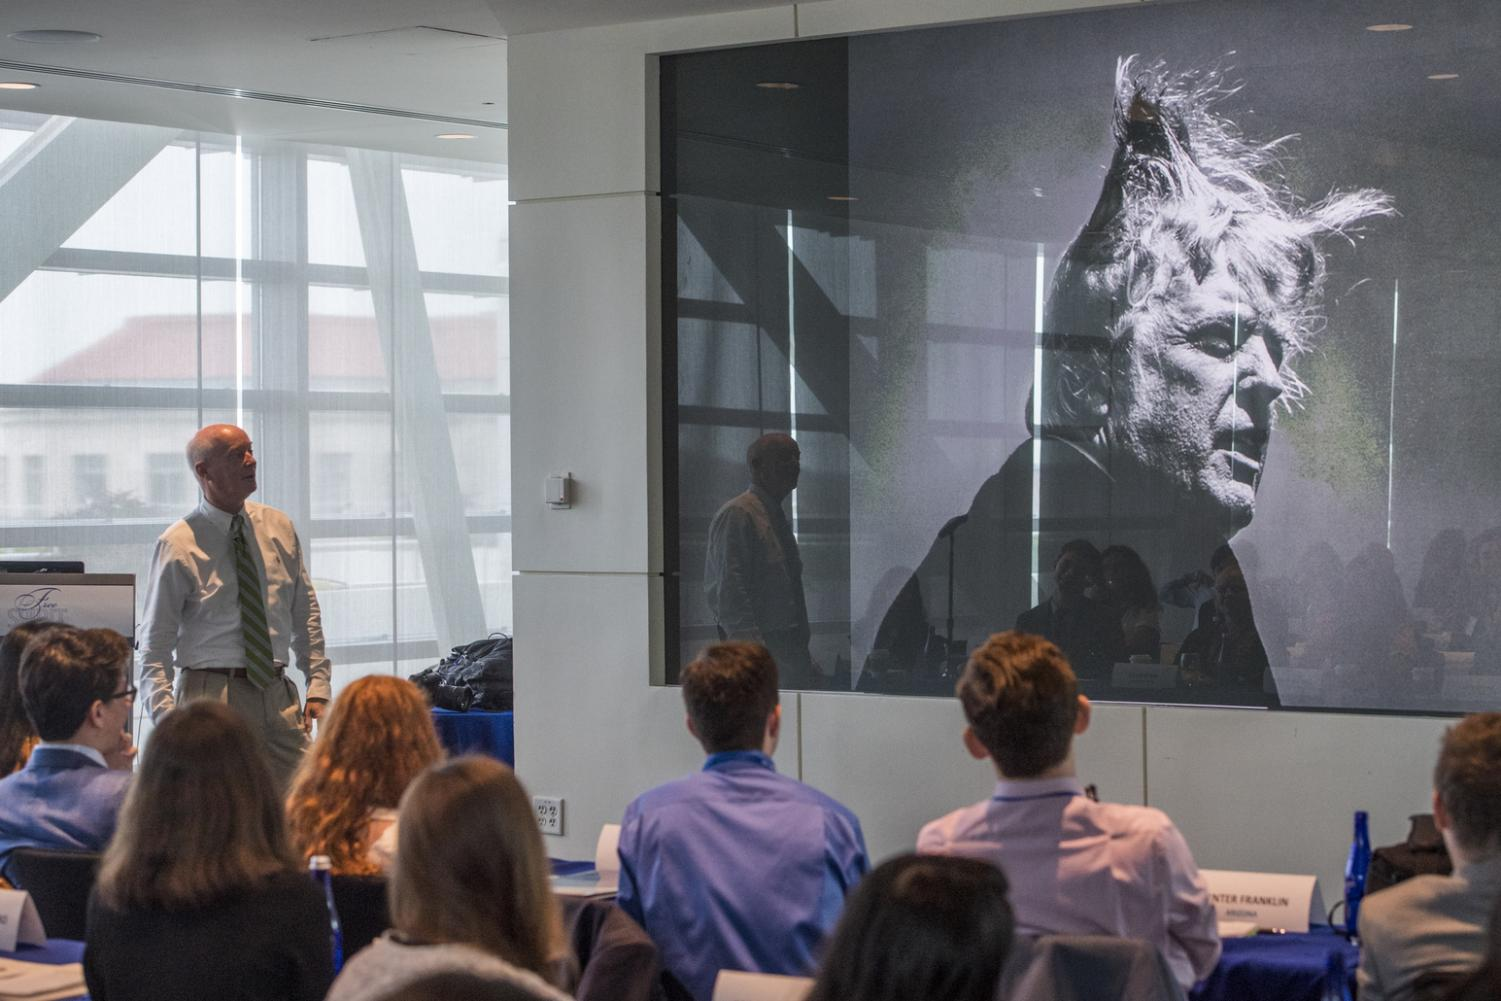 Photojournalist Doug Mills explains his photograph of President Trump to students attending the Free Spirit Conference in D.C. Mr. Mills was one of the speakers at the conference and discussed his relationship with presidents as a photographer.